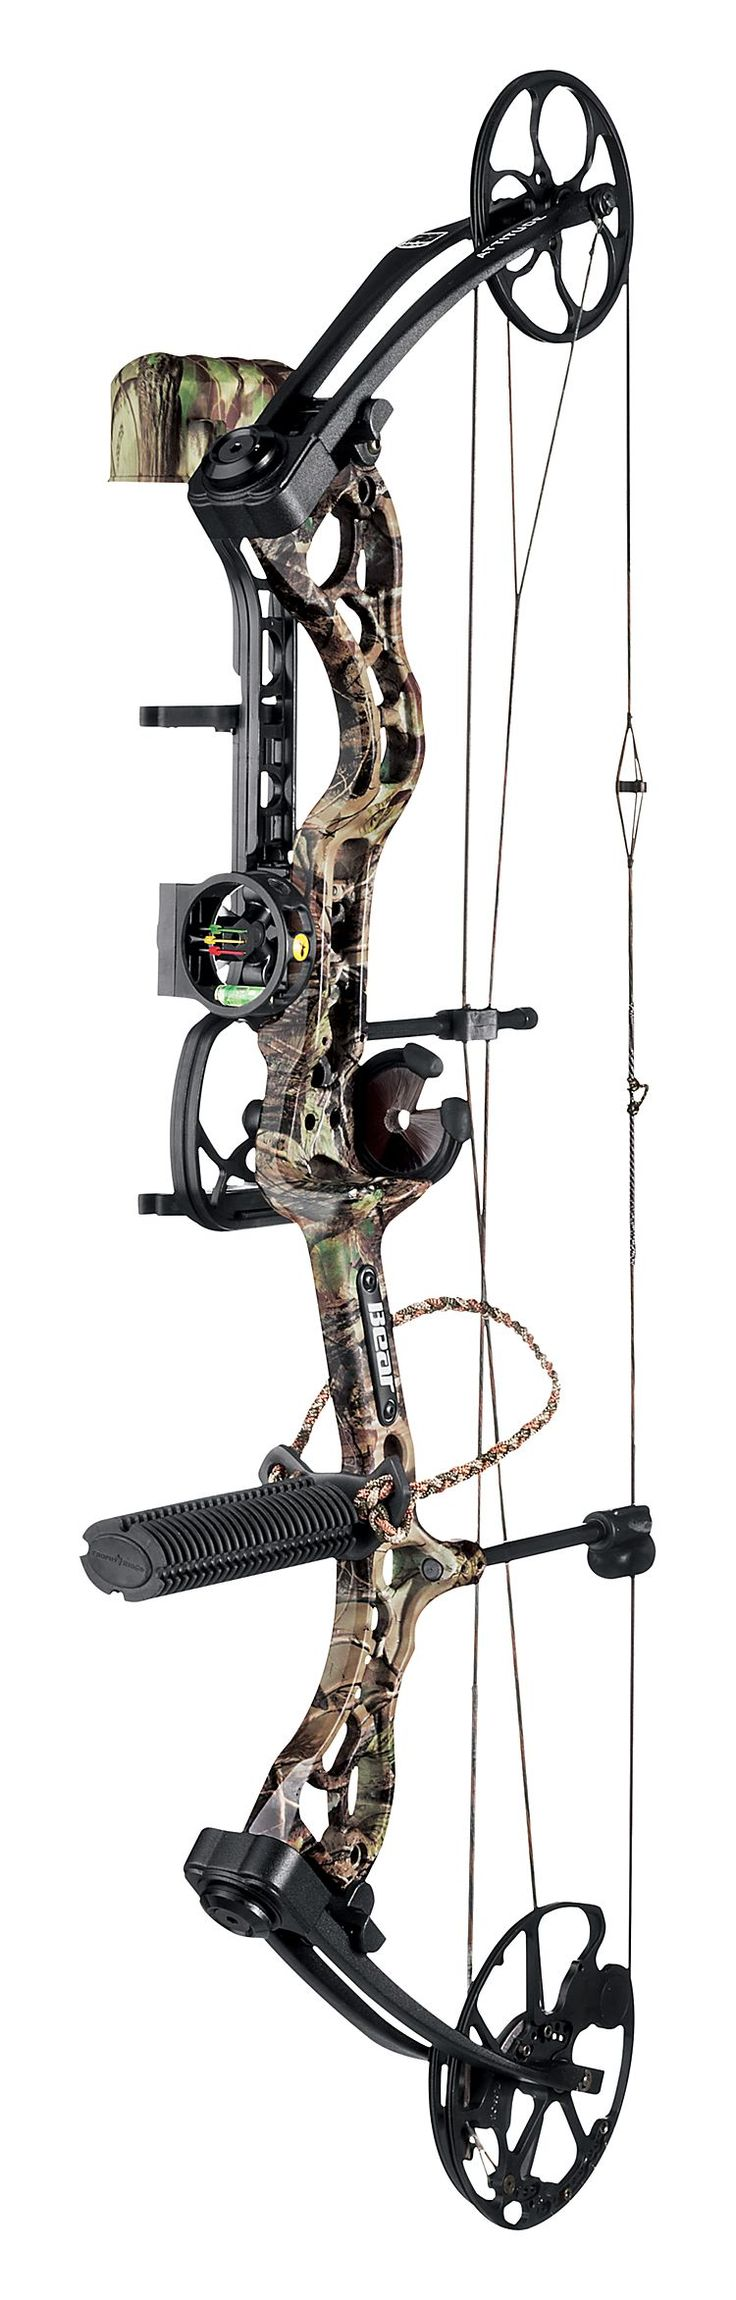 Bear Archery Attitude Compound Bow Package | Bass Pro Shops right hand, 50-60# draw weight